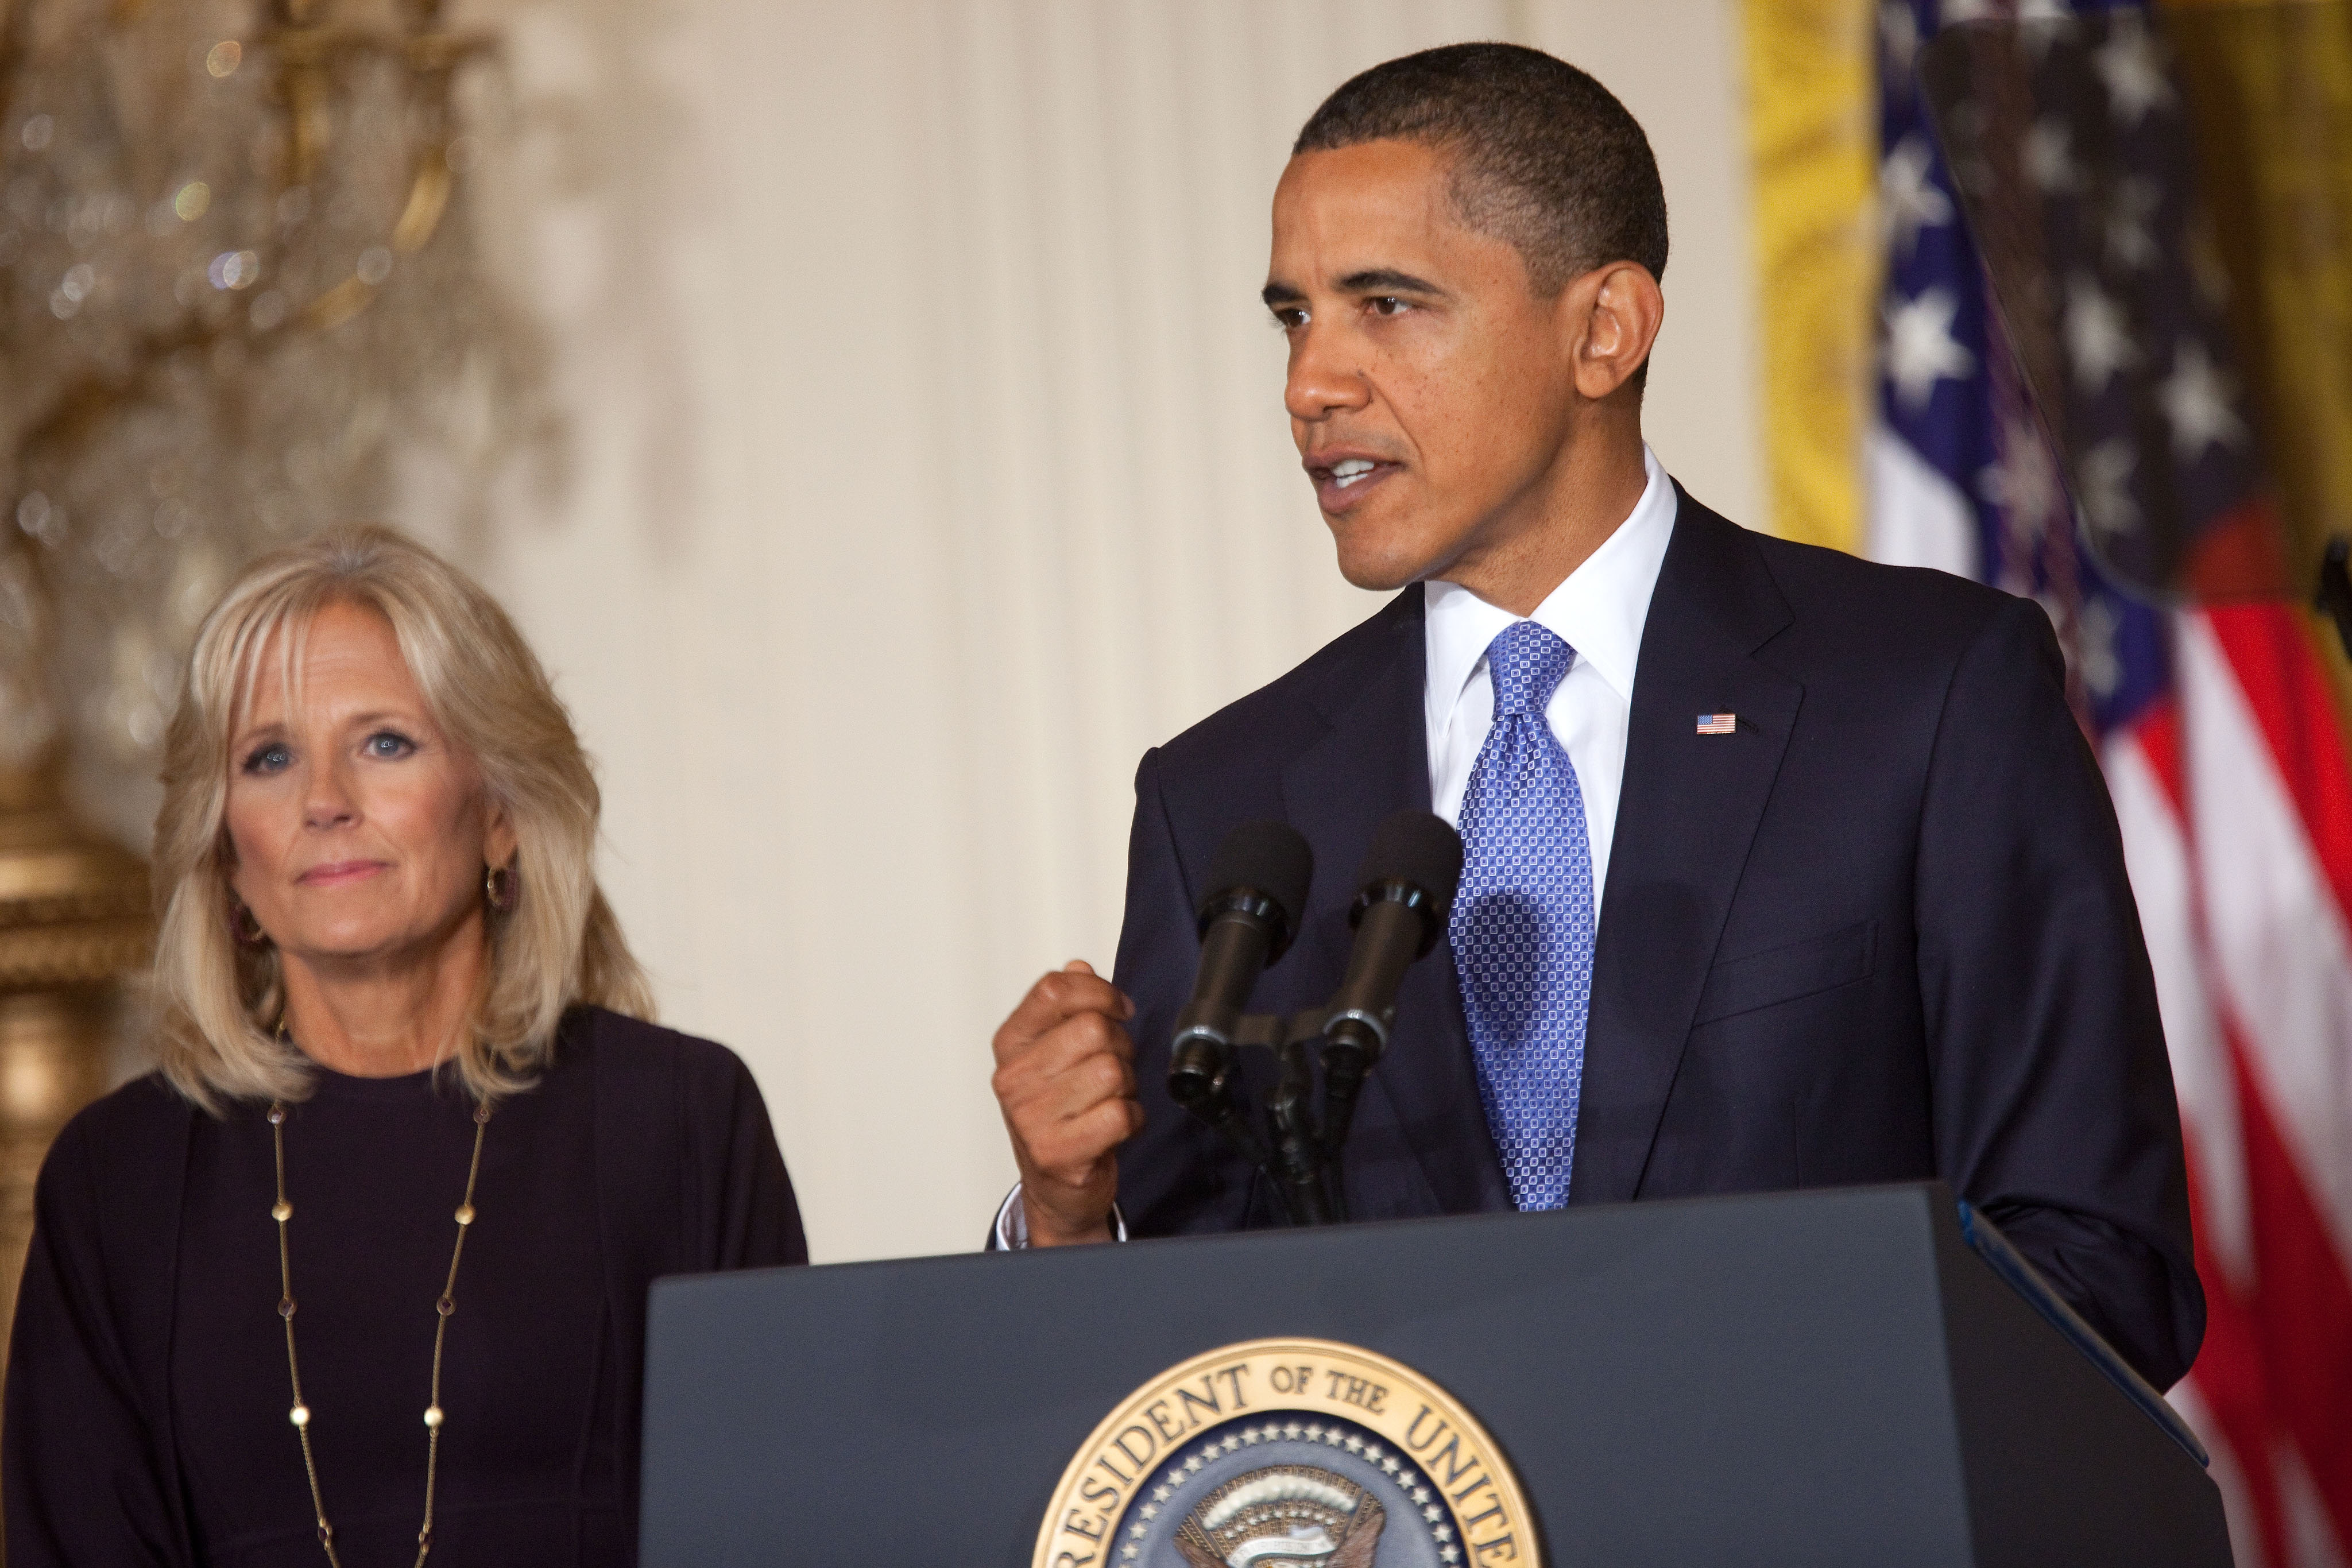 President Barack Obama and Dr. Jill Biden on Stage at Summit on Community Colleges